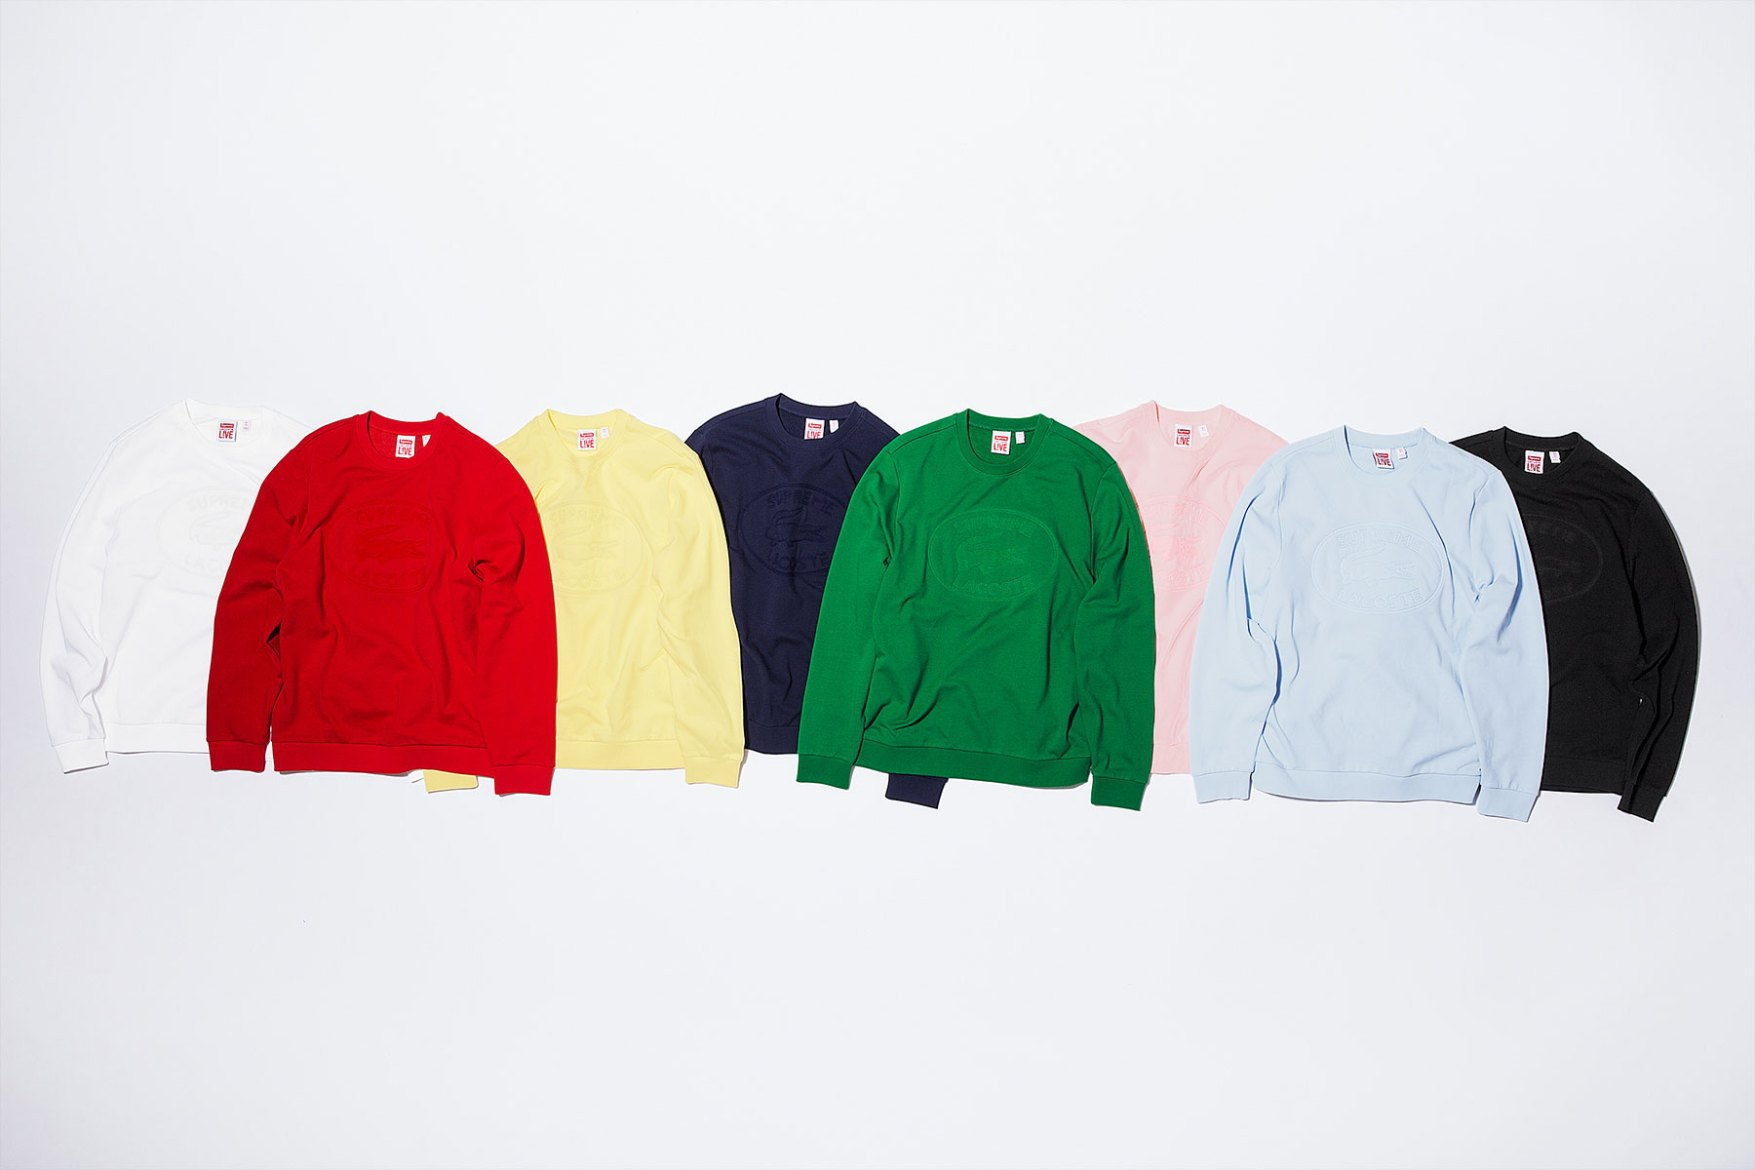 lacoste-supreme-crewneck-group-2017-spring-summer-17